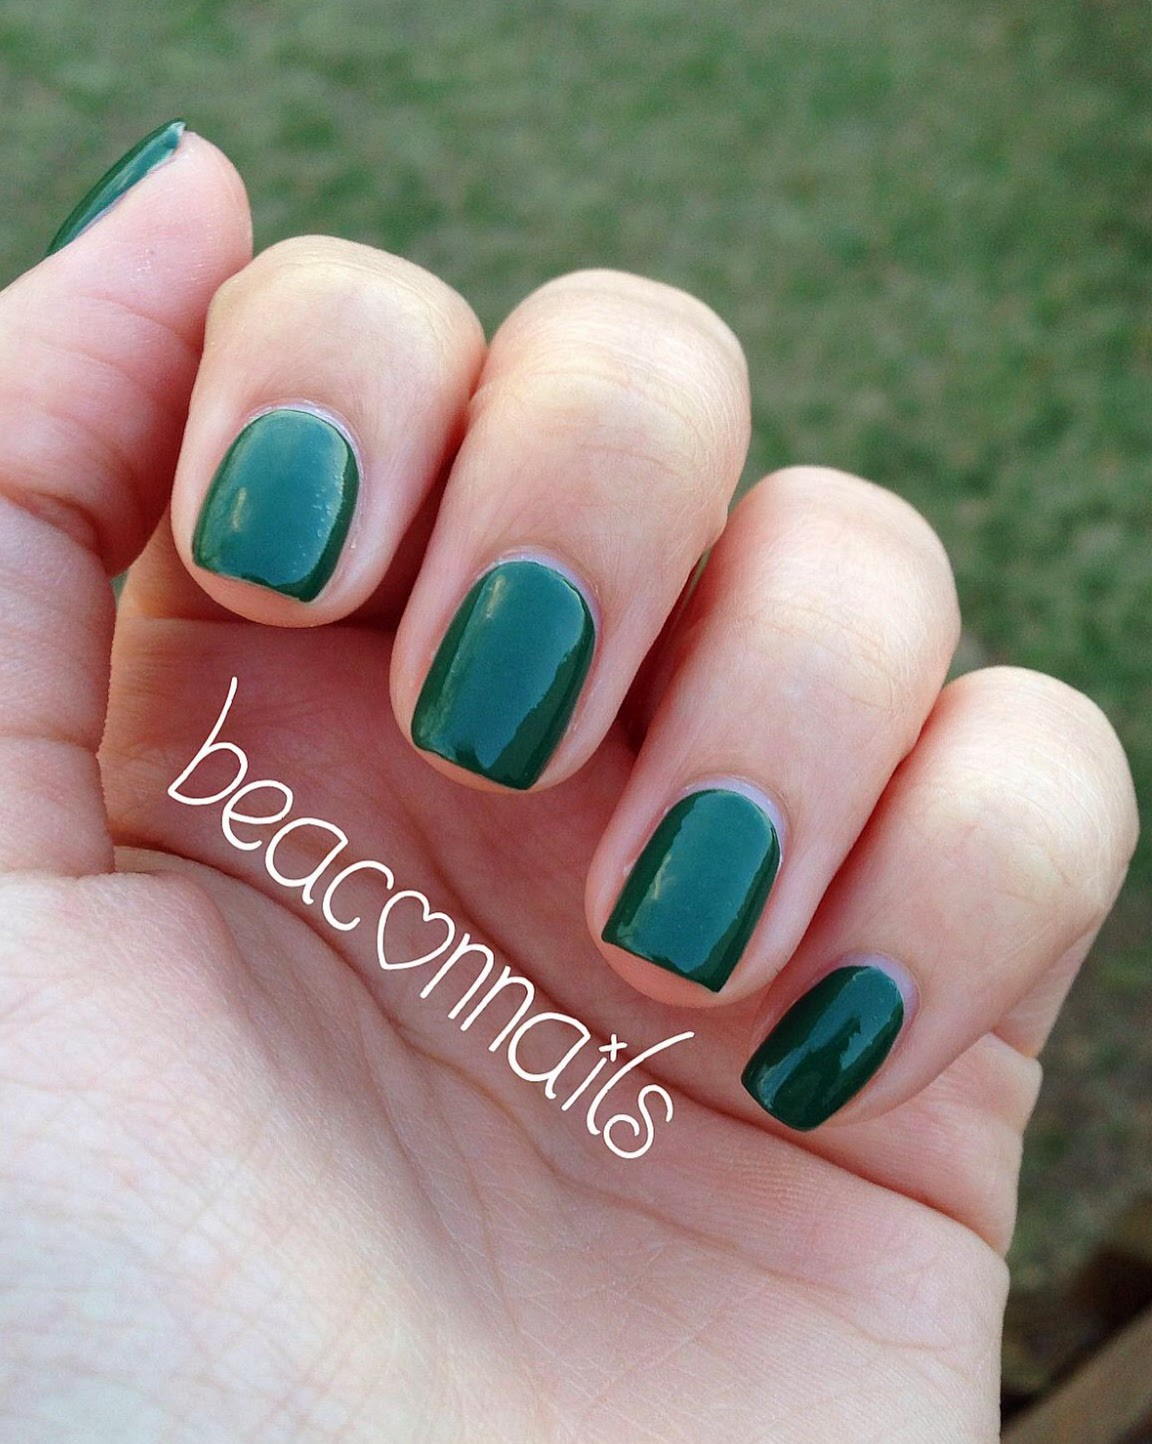 Beacon Nails: Marc Jacobs - #154 Jungle {Limited Edition}